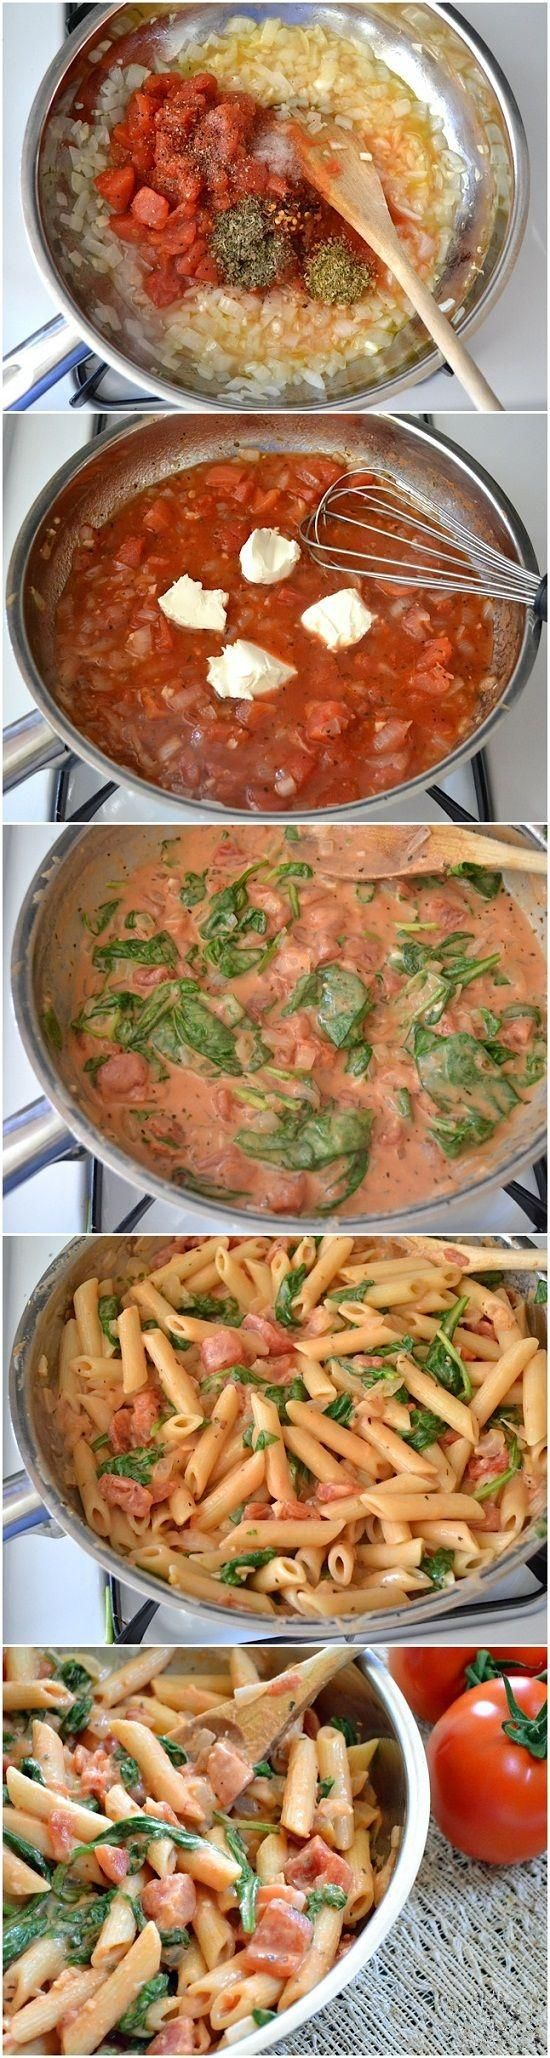 Creamy Tomato And Spinach Pasta. Made this with whole wheat pasta and added some chicken. Yum!